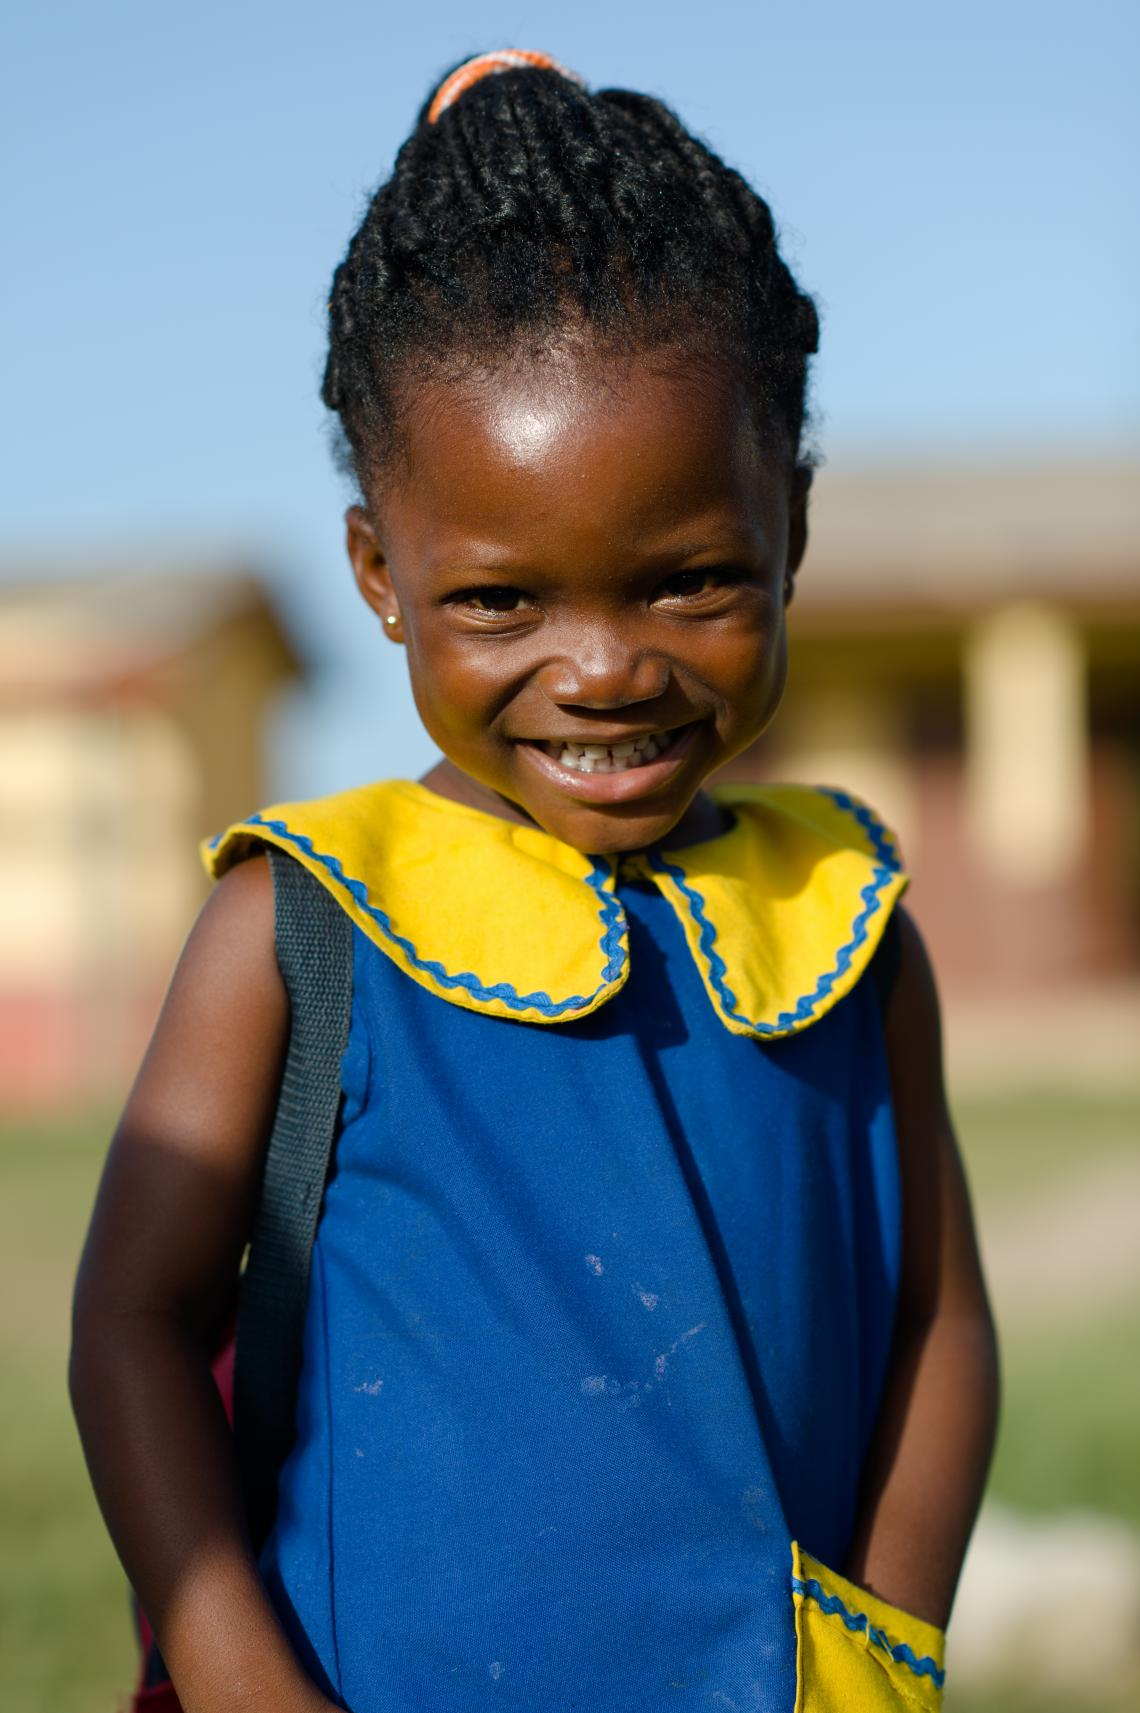 A young girl smiling on her way to school